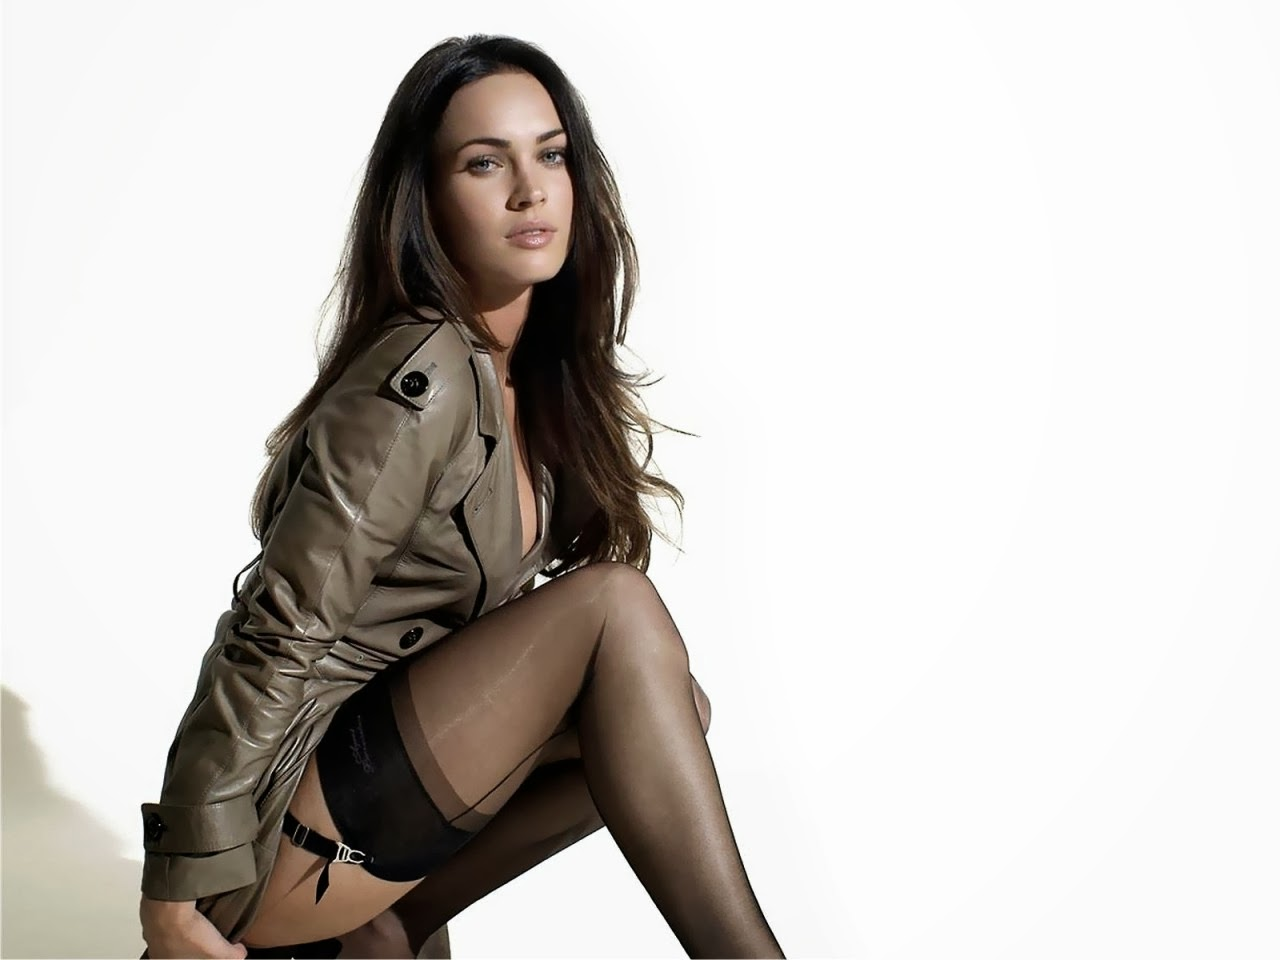 megan fox wallpaper 2013 14 megan fox wallpaper 2013 14 megan fox 1280x960